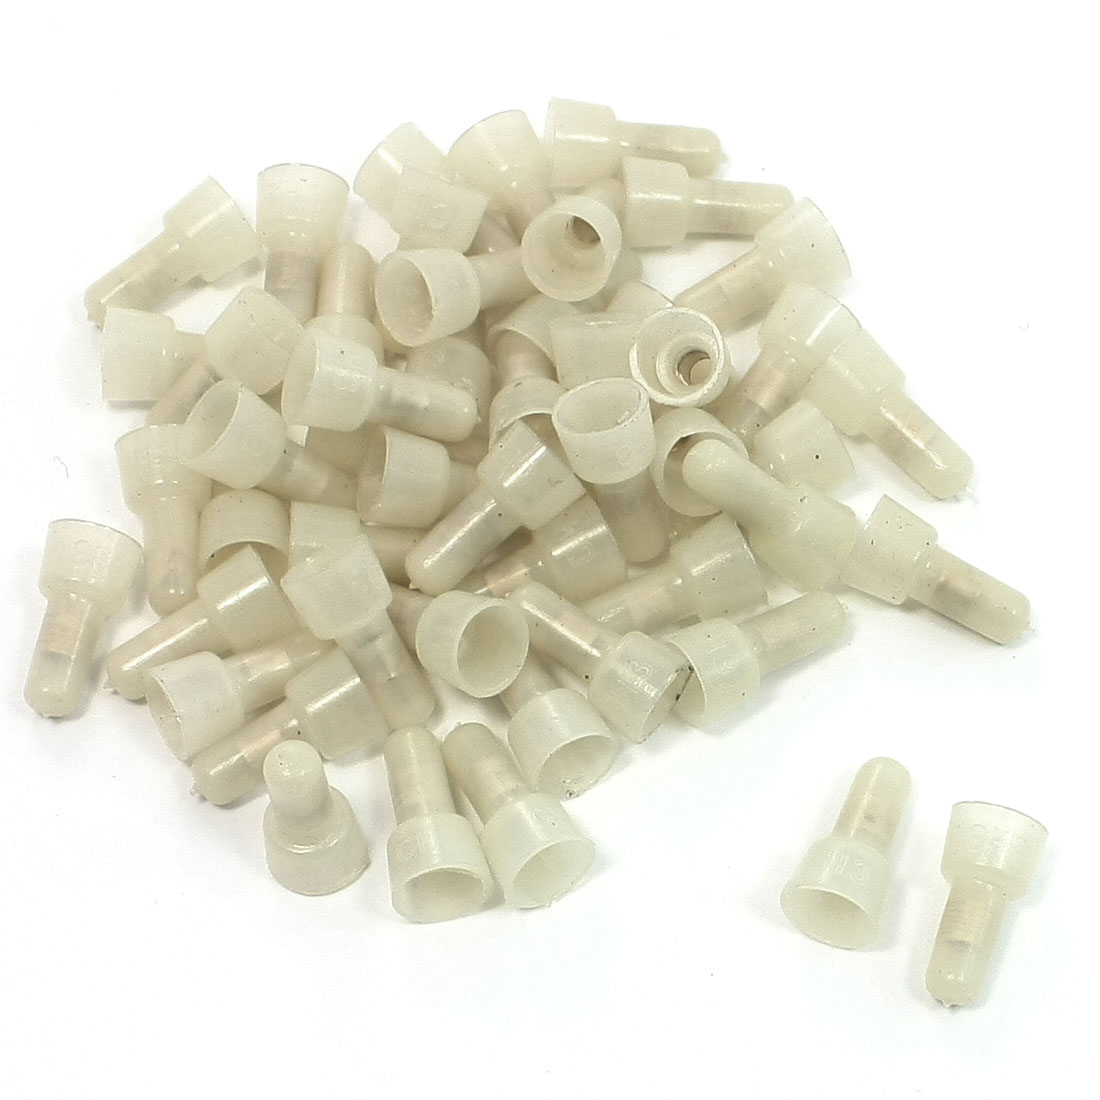 50 Pcs 3mm Tube Safe Closed End Caps Crimp Wire Connectors Guard Covers Beige